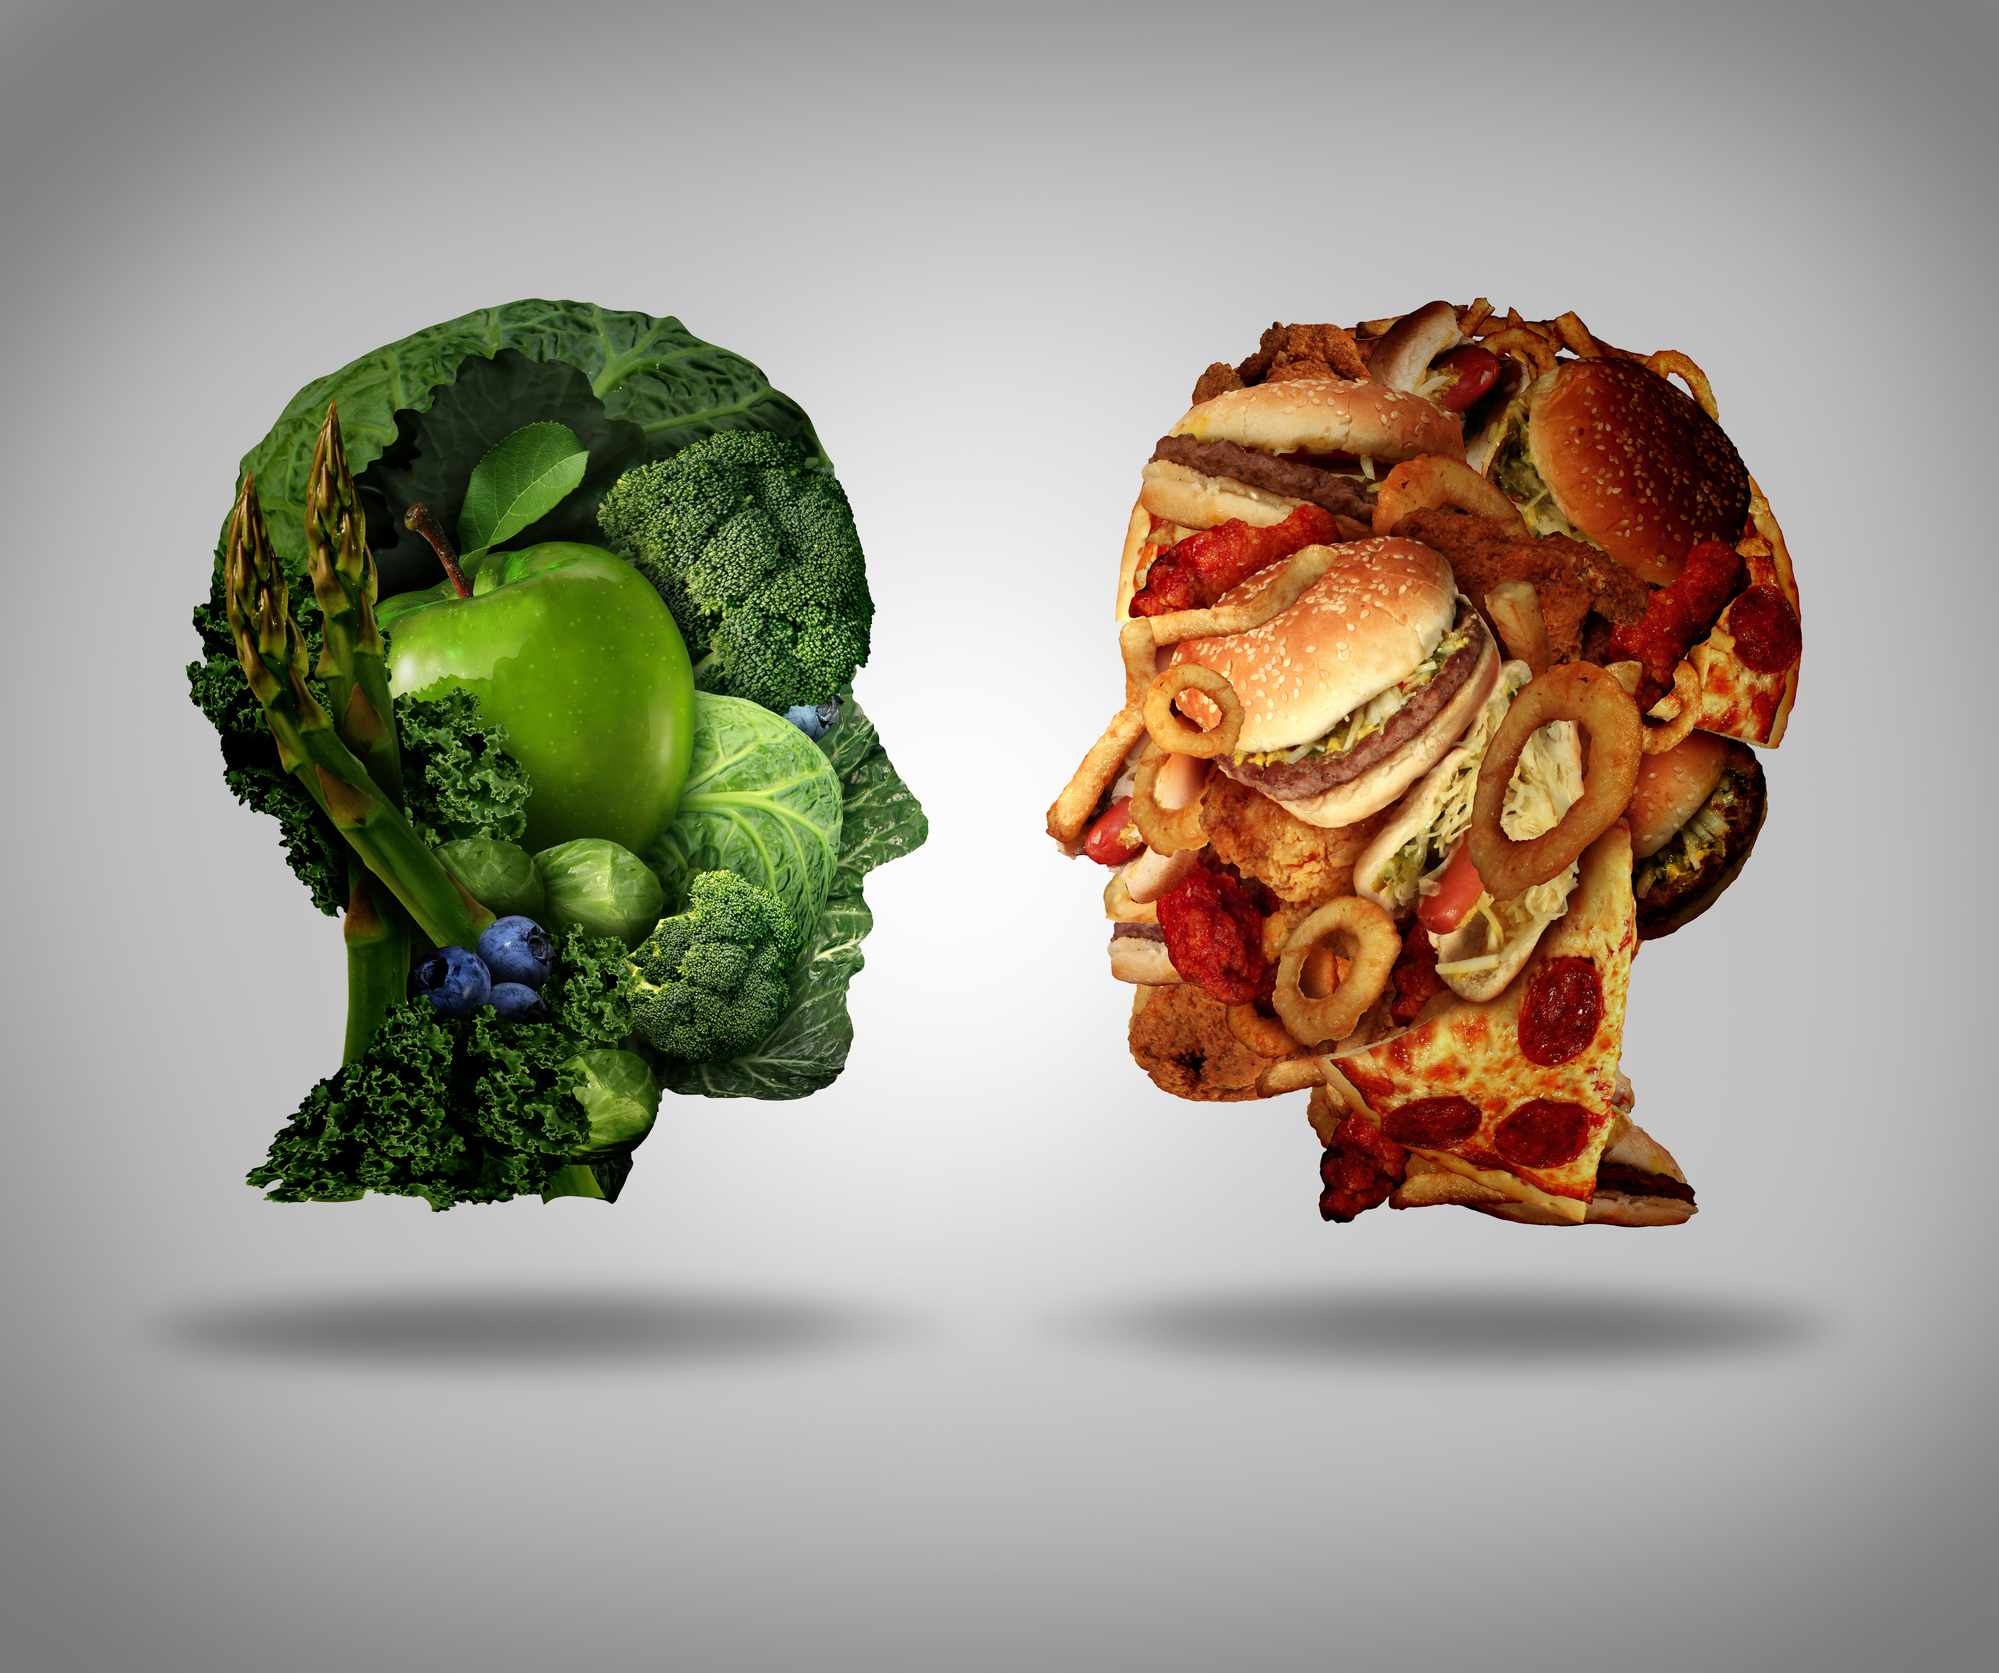 New evidence healthy diet actively improves depression symptoms